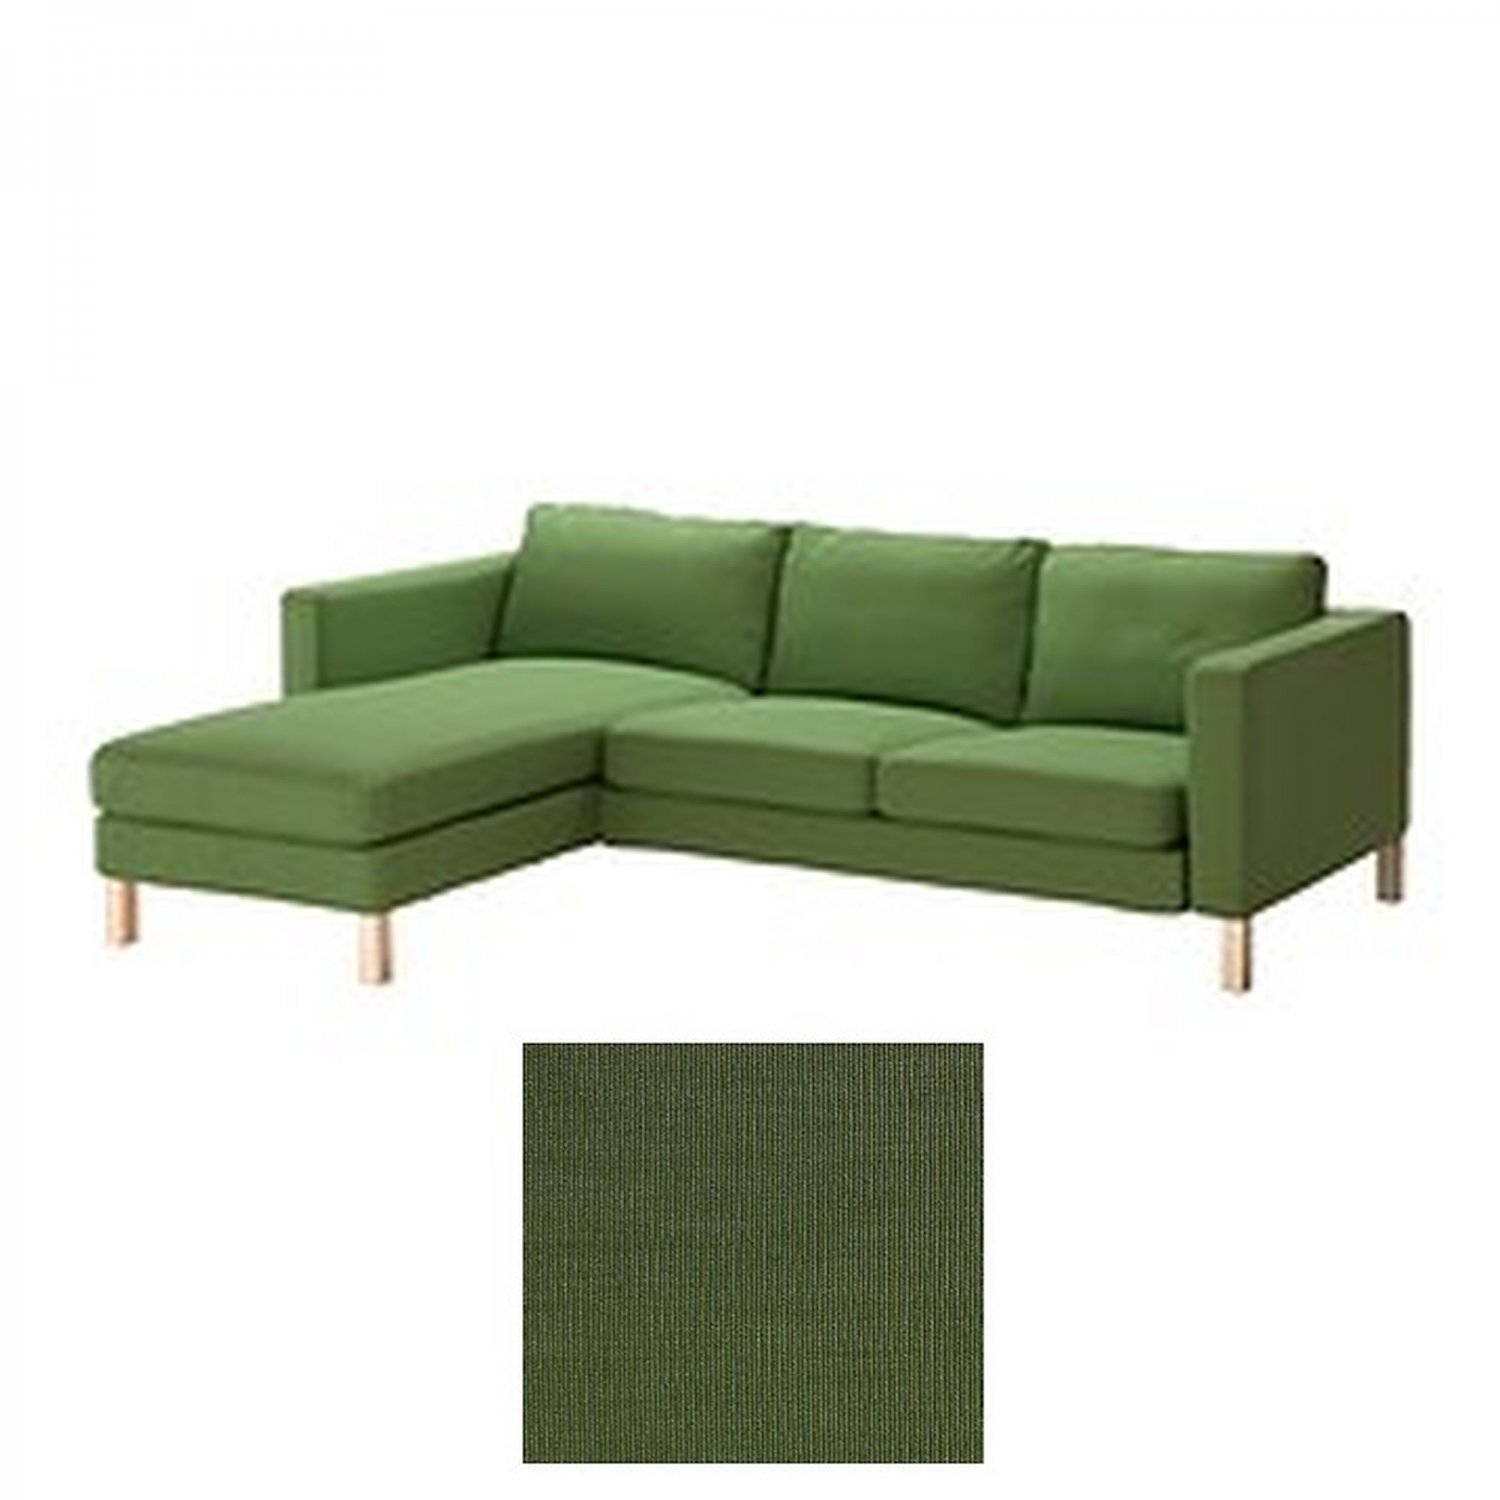 Ikea karlstad 2 seat loveseat sofa and chaise slipcover for Chaise couch slipcover